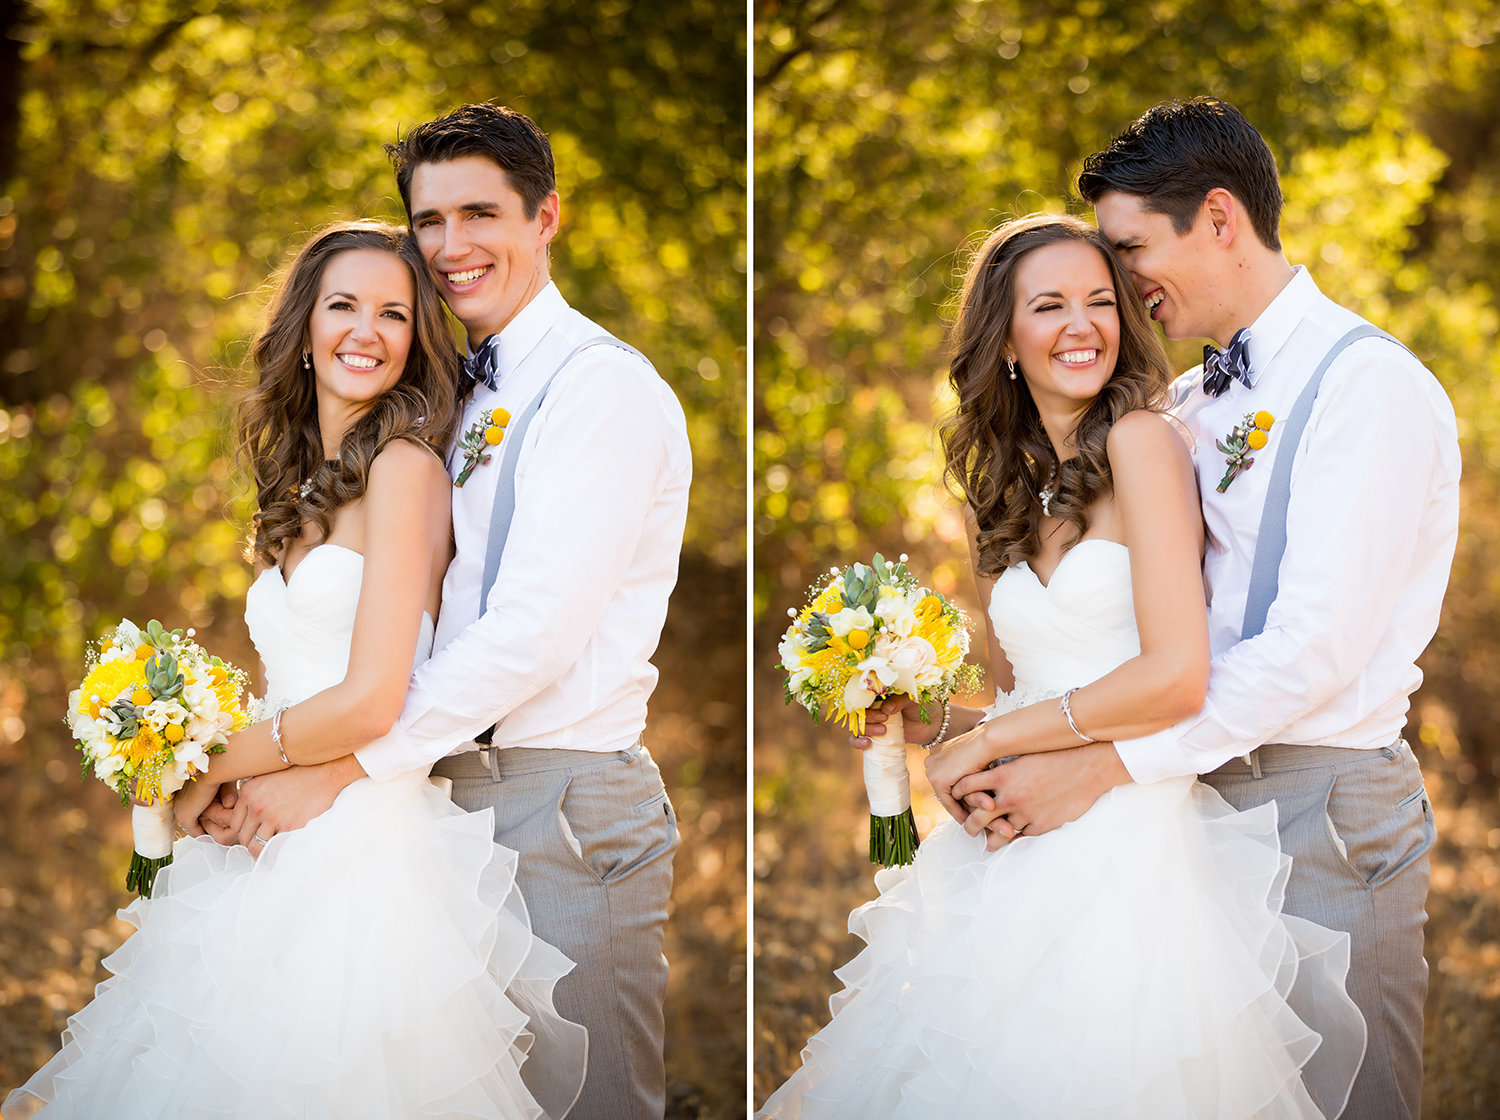 Destination wedding photos stunning couple in open field